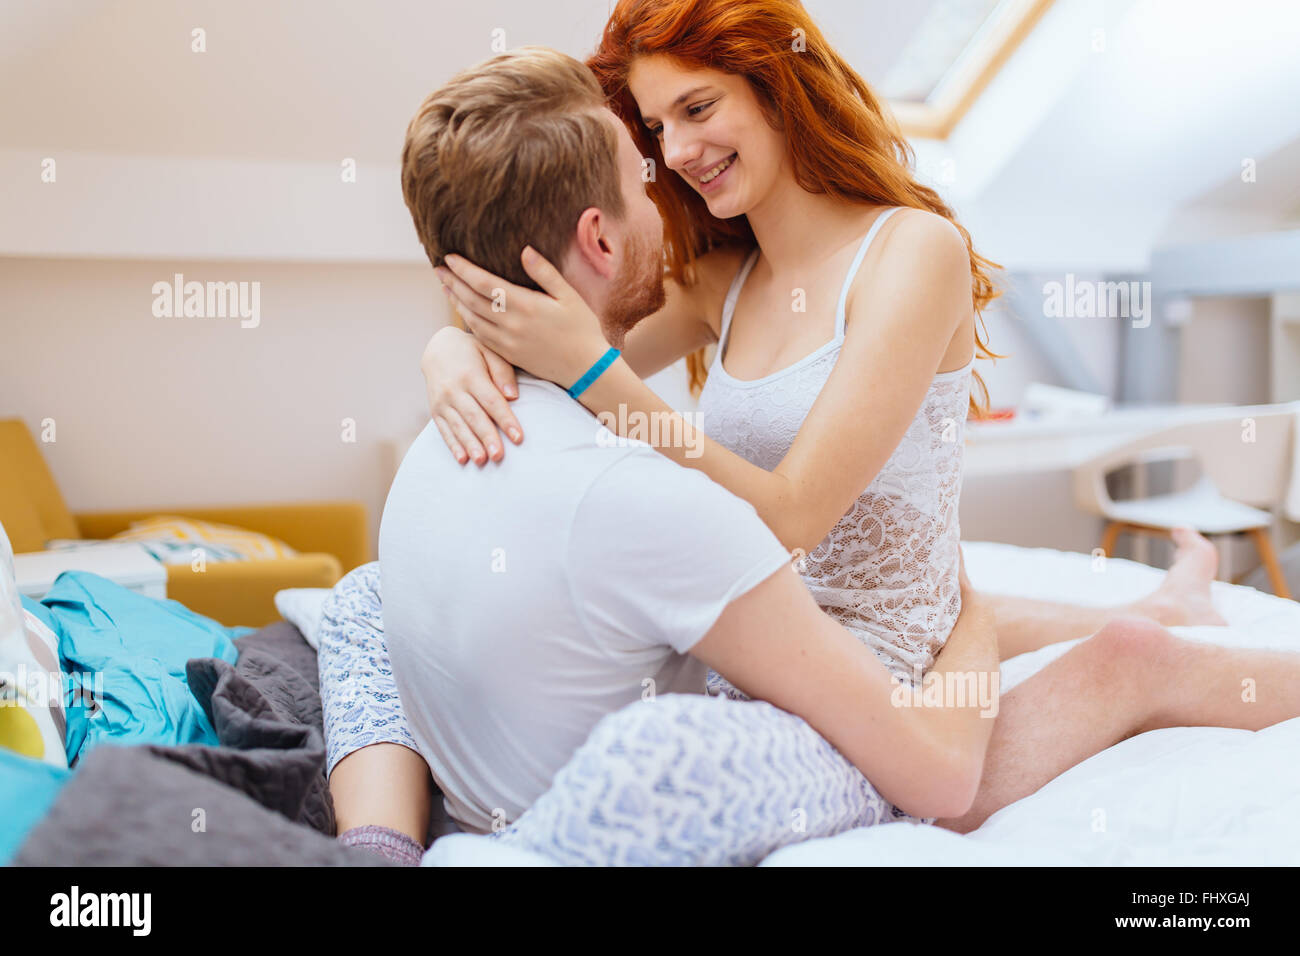 Romantic couple in love lying on bed and being passionate. Romantic couple in love lying on bed and being passionate Stock